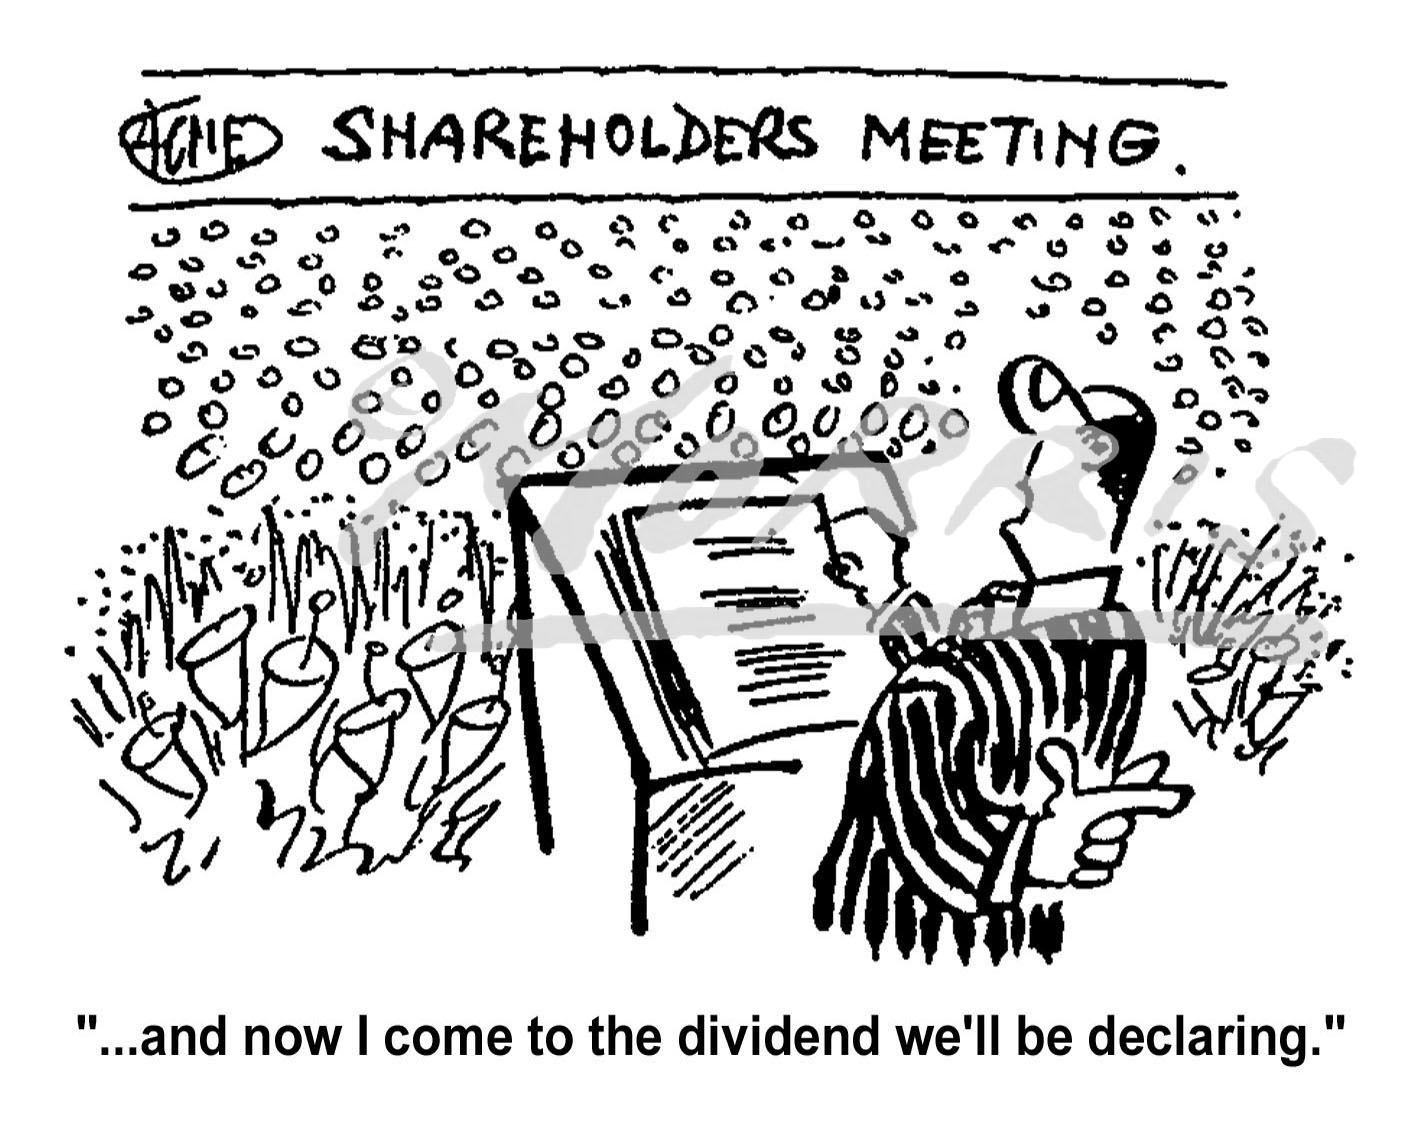 Stock market shareholders cartoon Ref: 0331bw